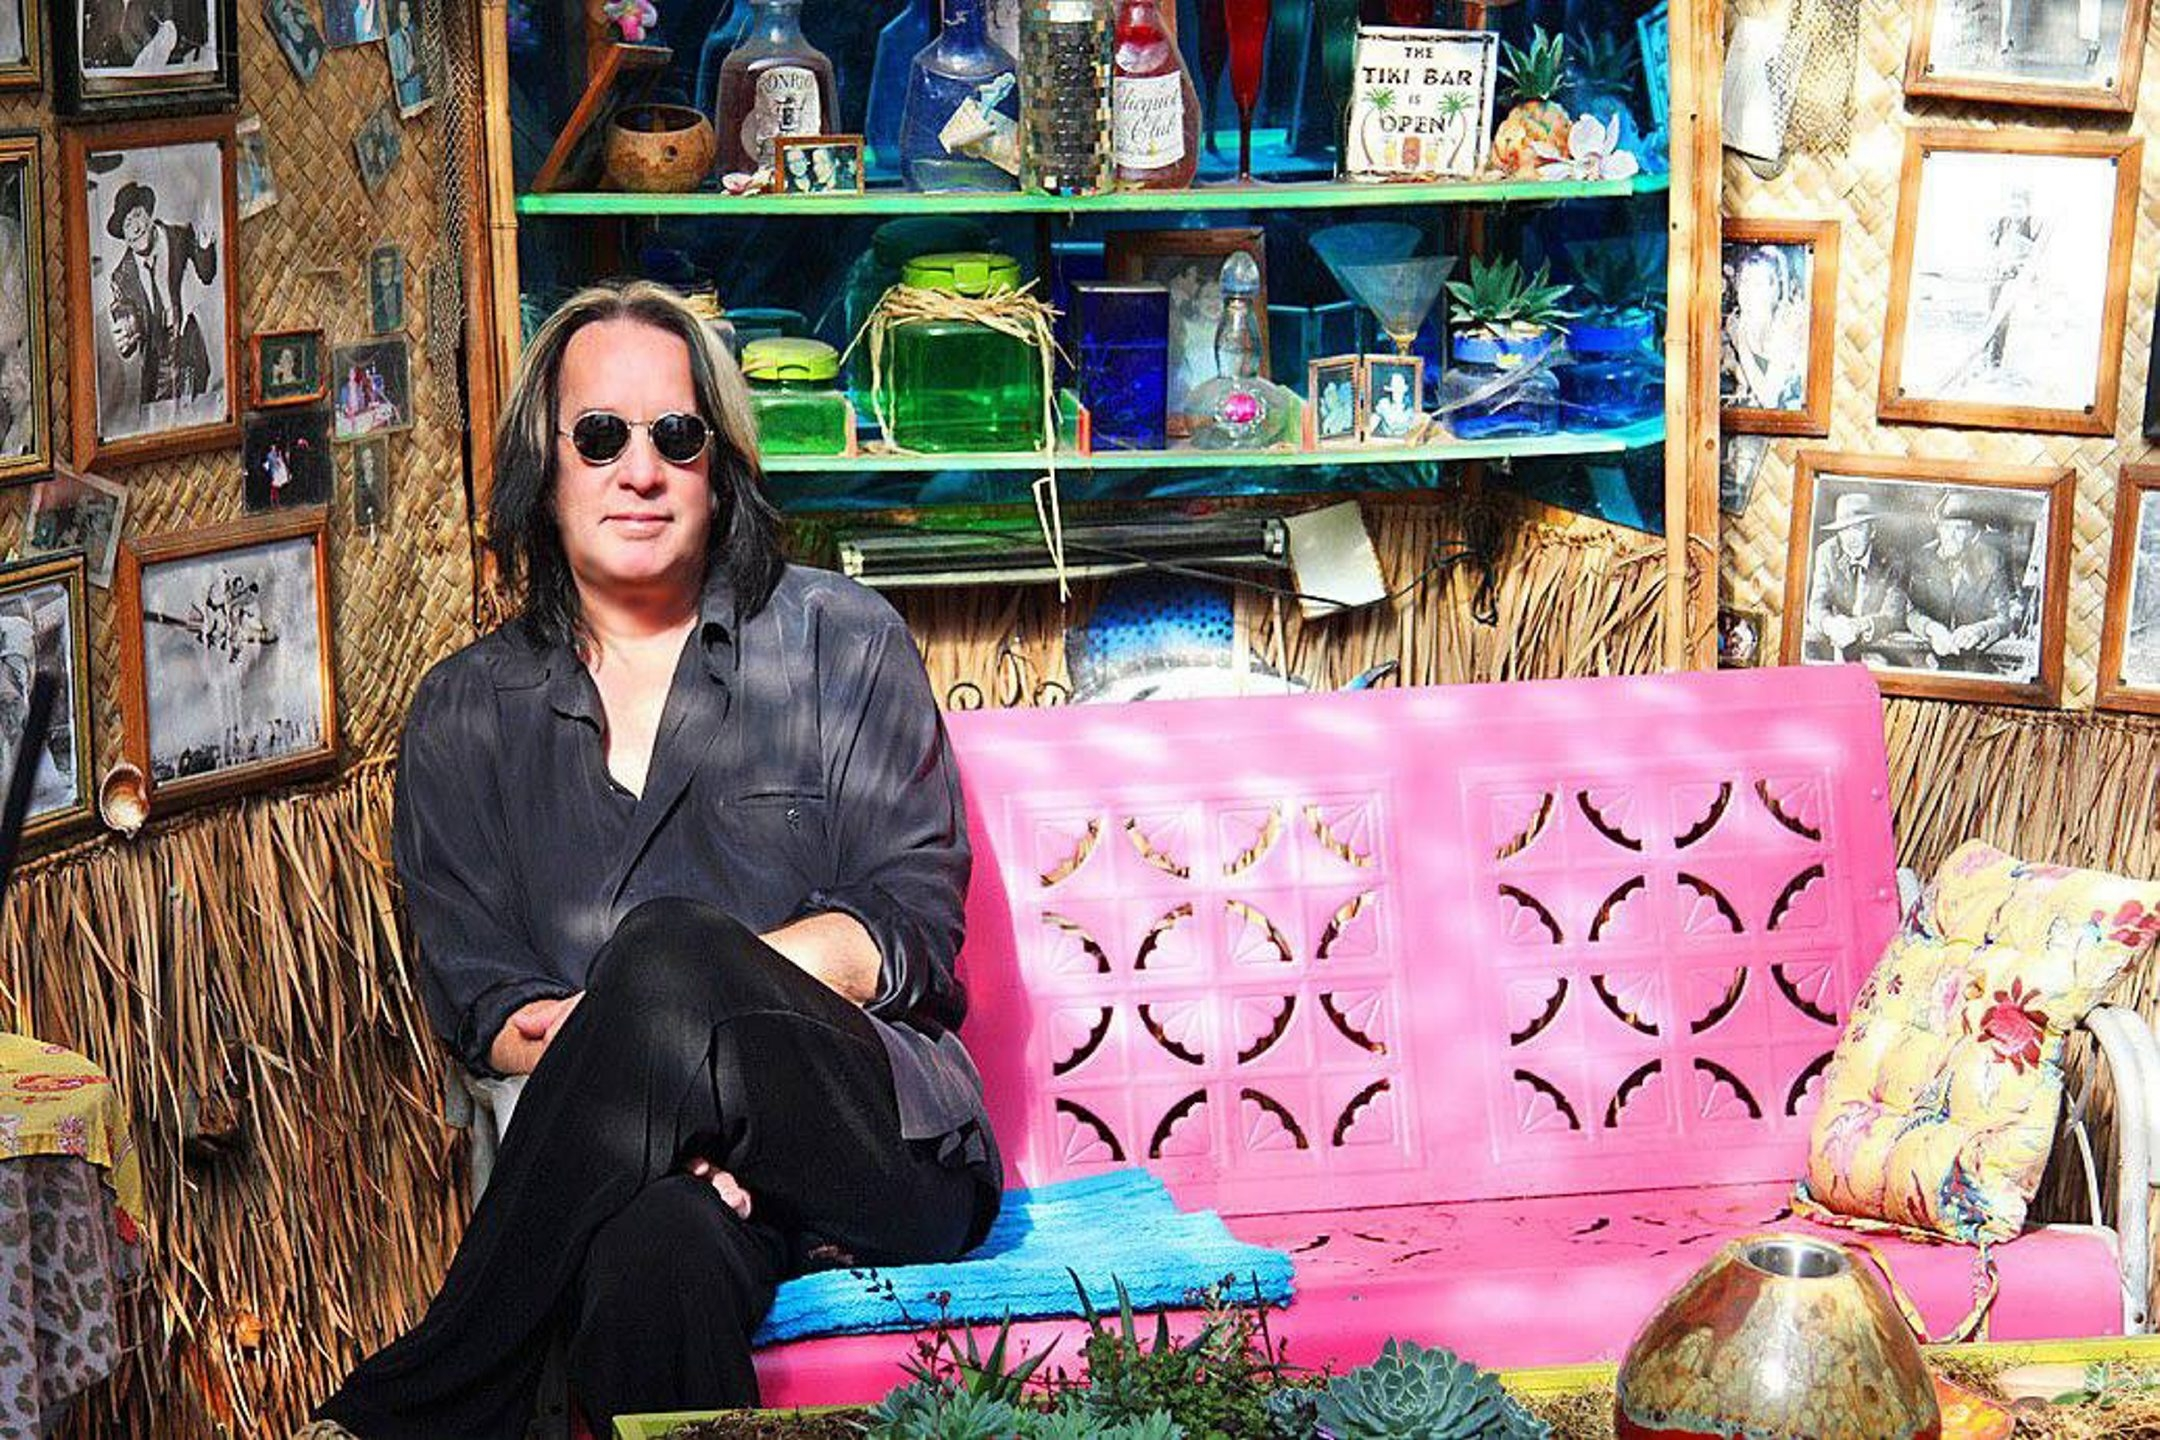 Todd Rundgren brings his 'An Evening With' tour to the Riviera Theatre on Dec. 6.